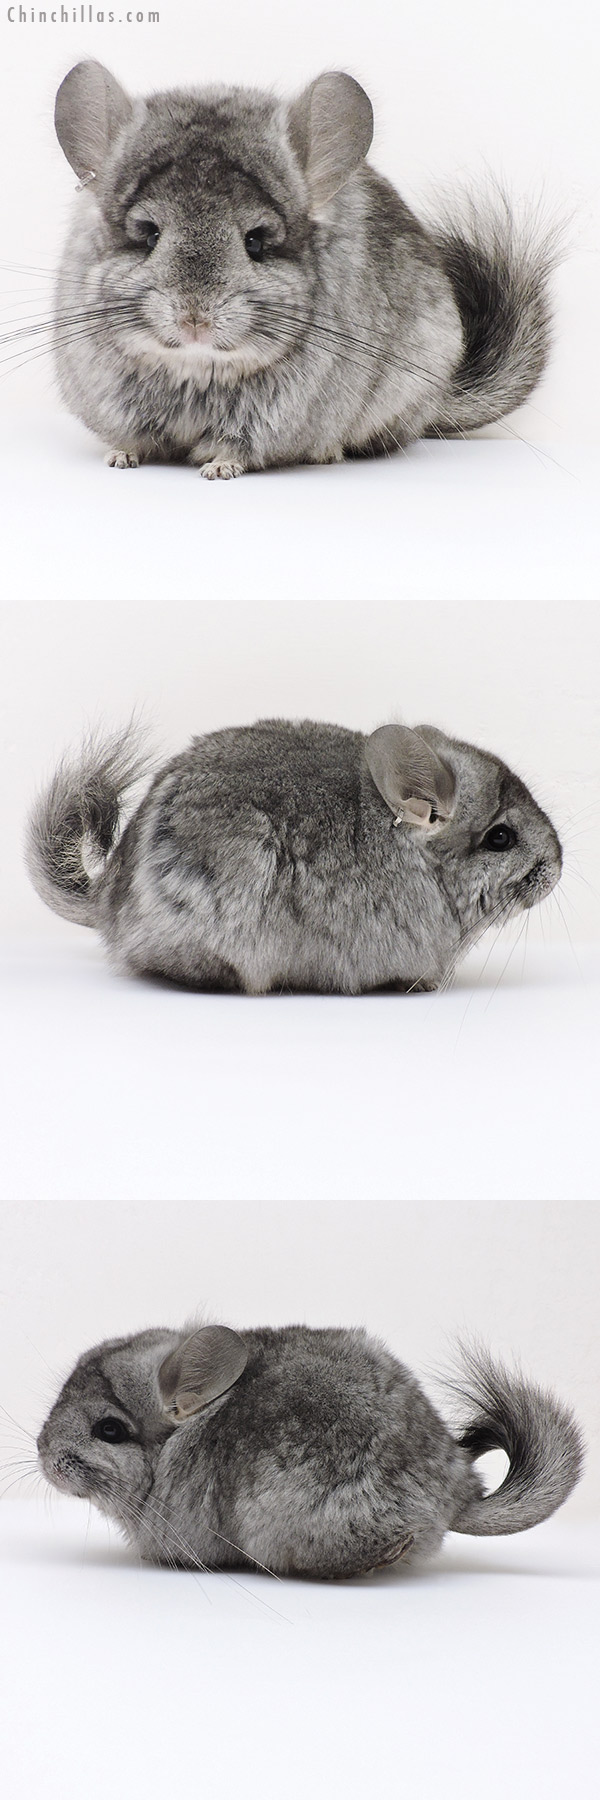 17179 Standard CCCU Royal Persian Angora ( Ebony & Locken Carrier ) Female Chinchilla